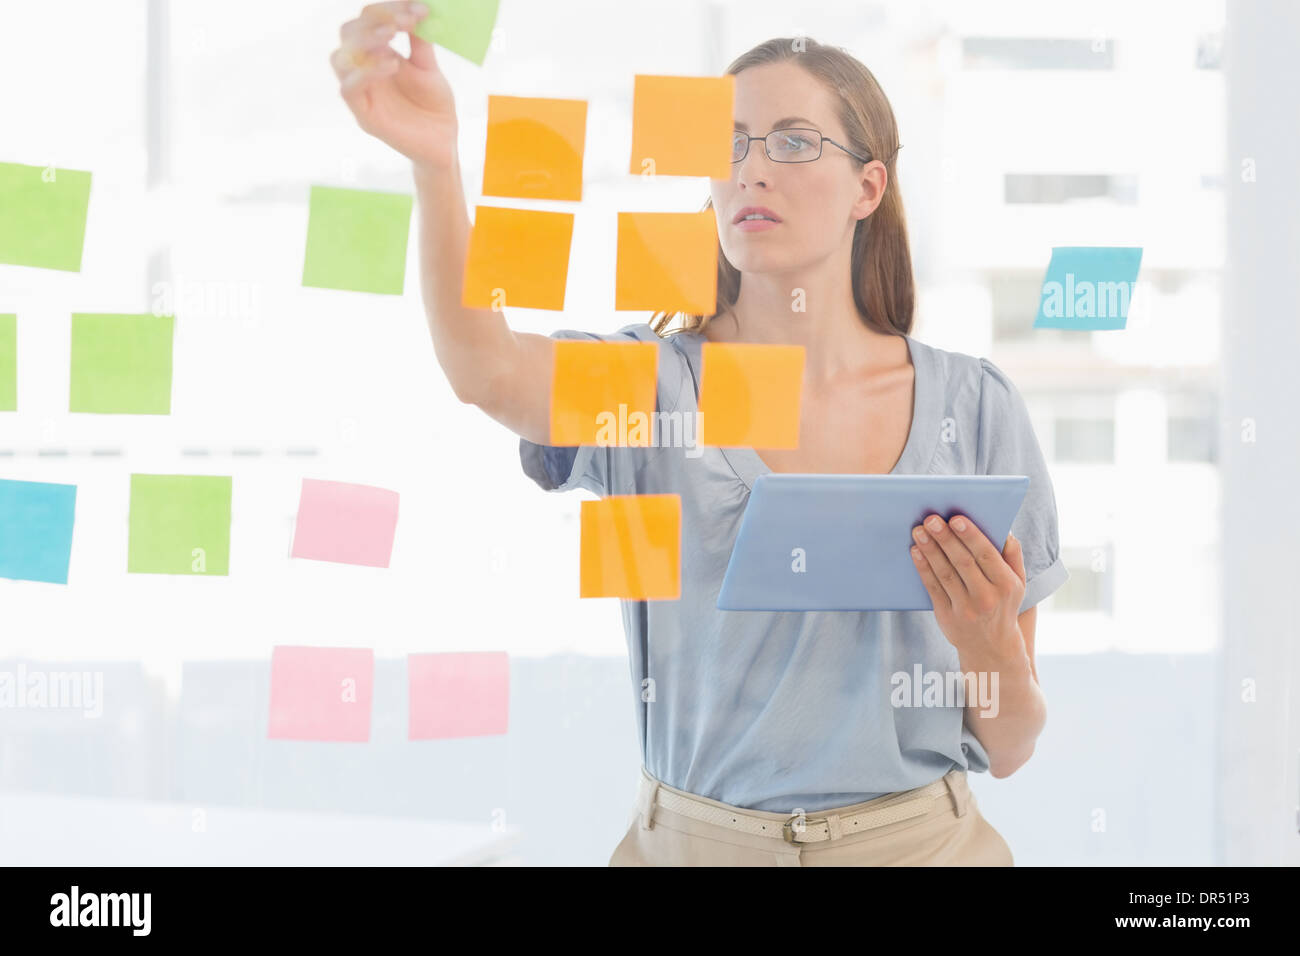 Concentrated artist looking at colorful sticky notes - Stock Image